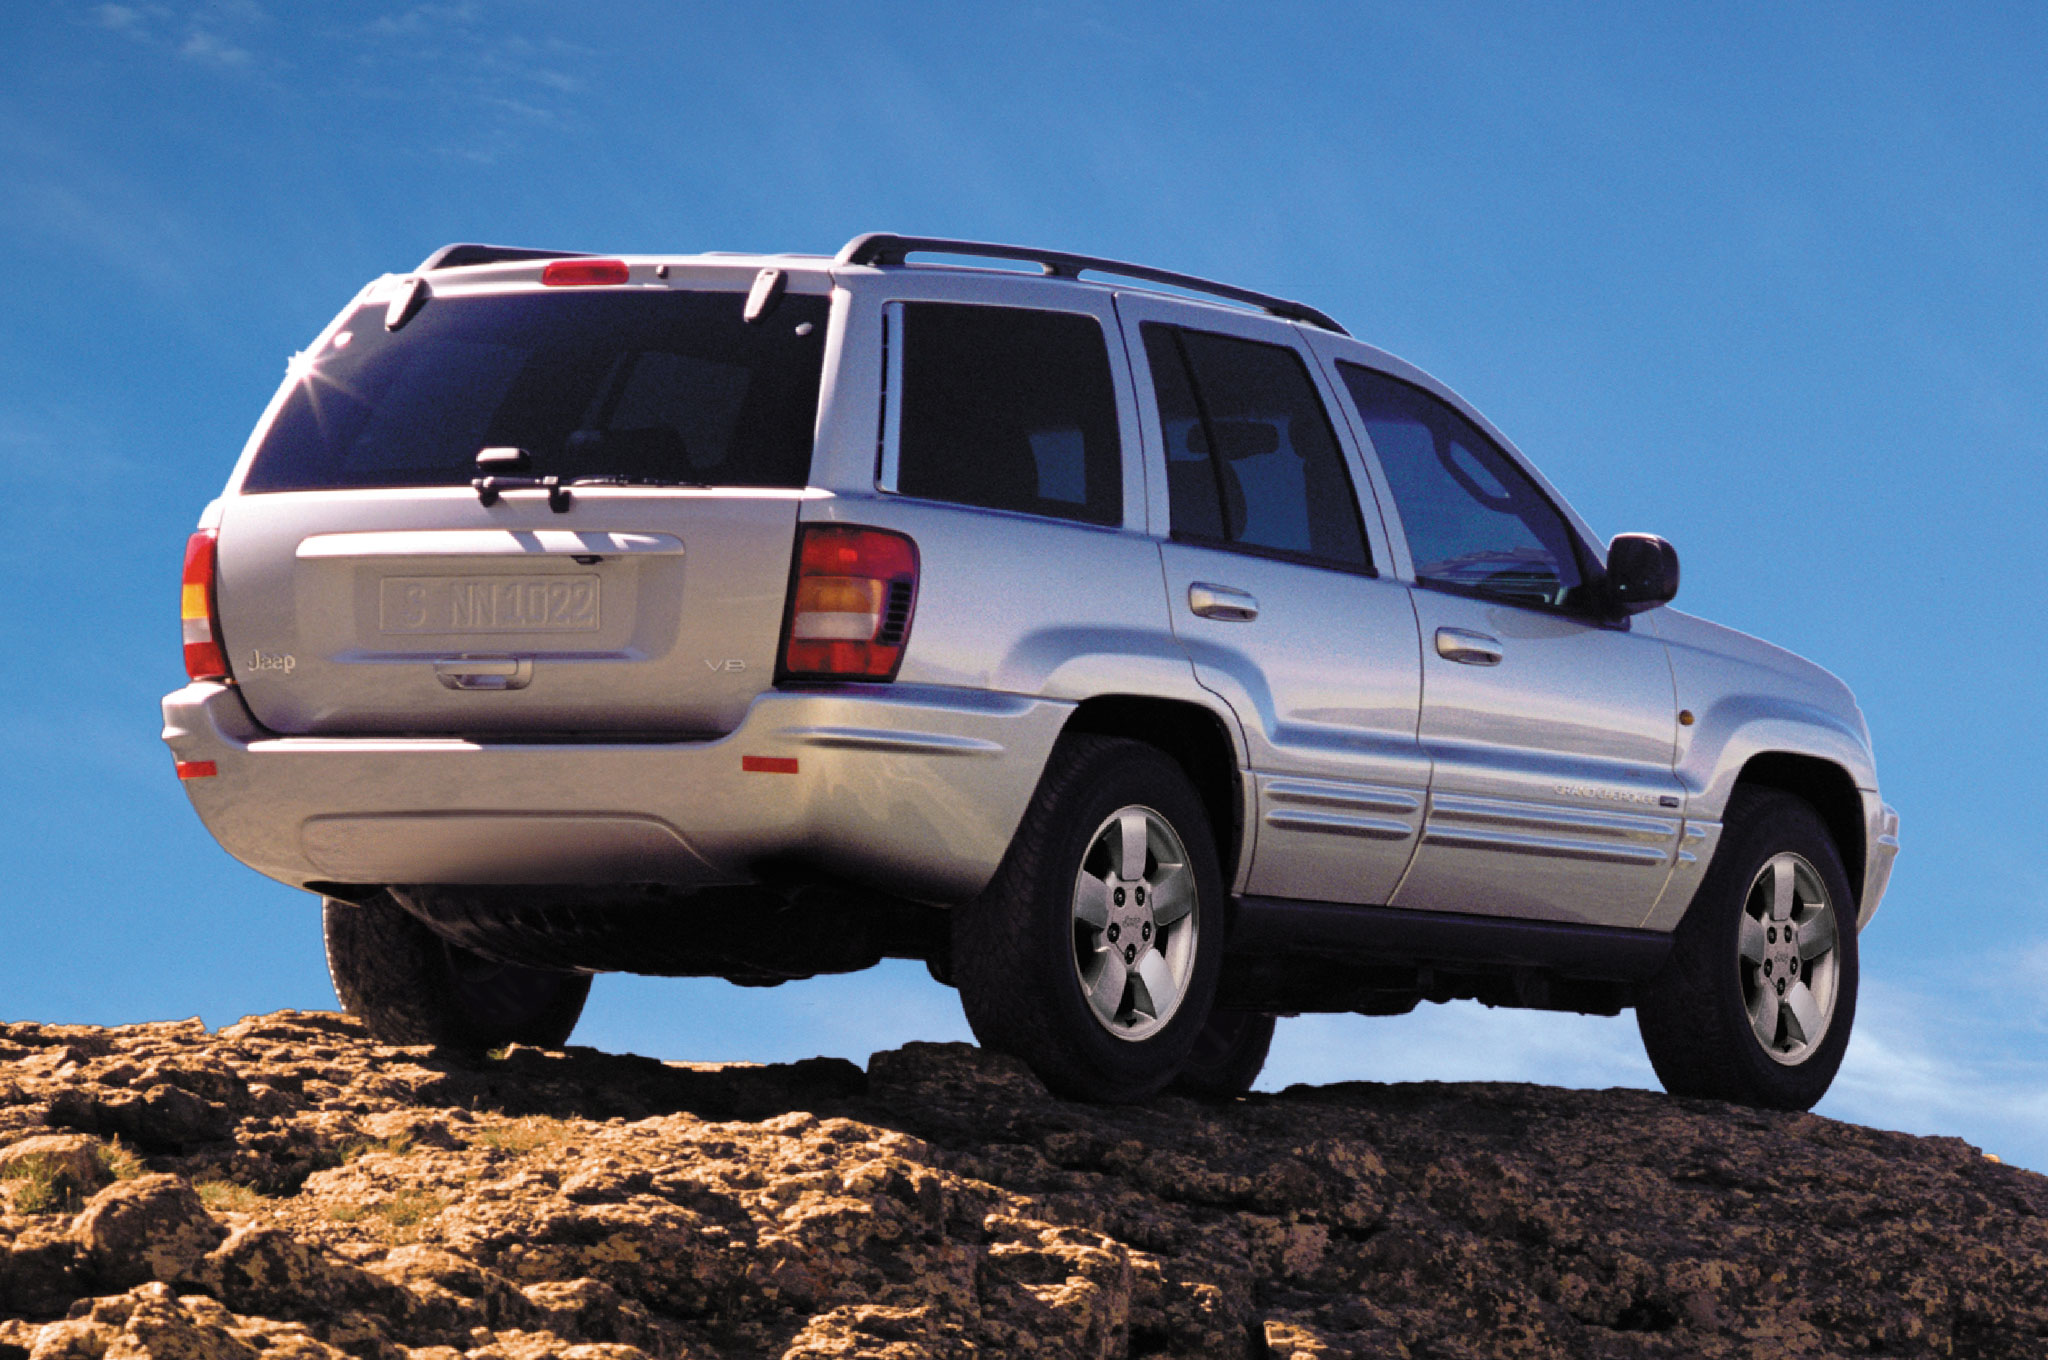 2004 Jeep Grand Cherokee Rear View11